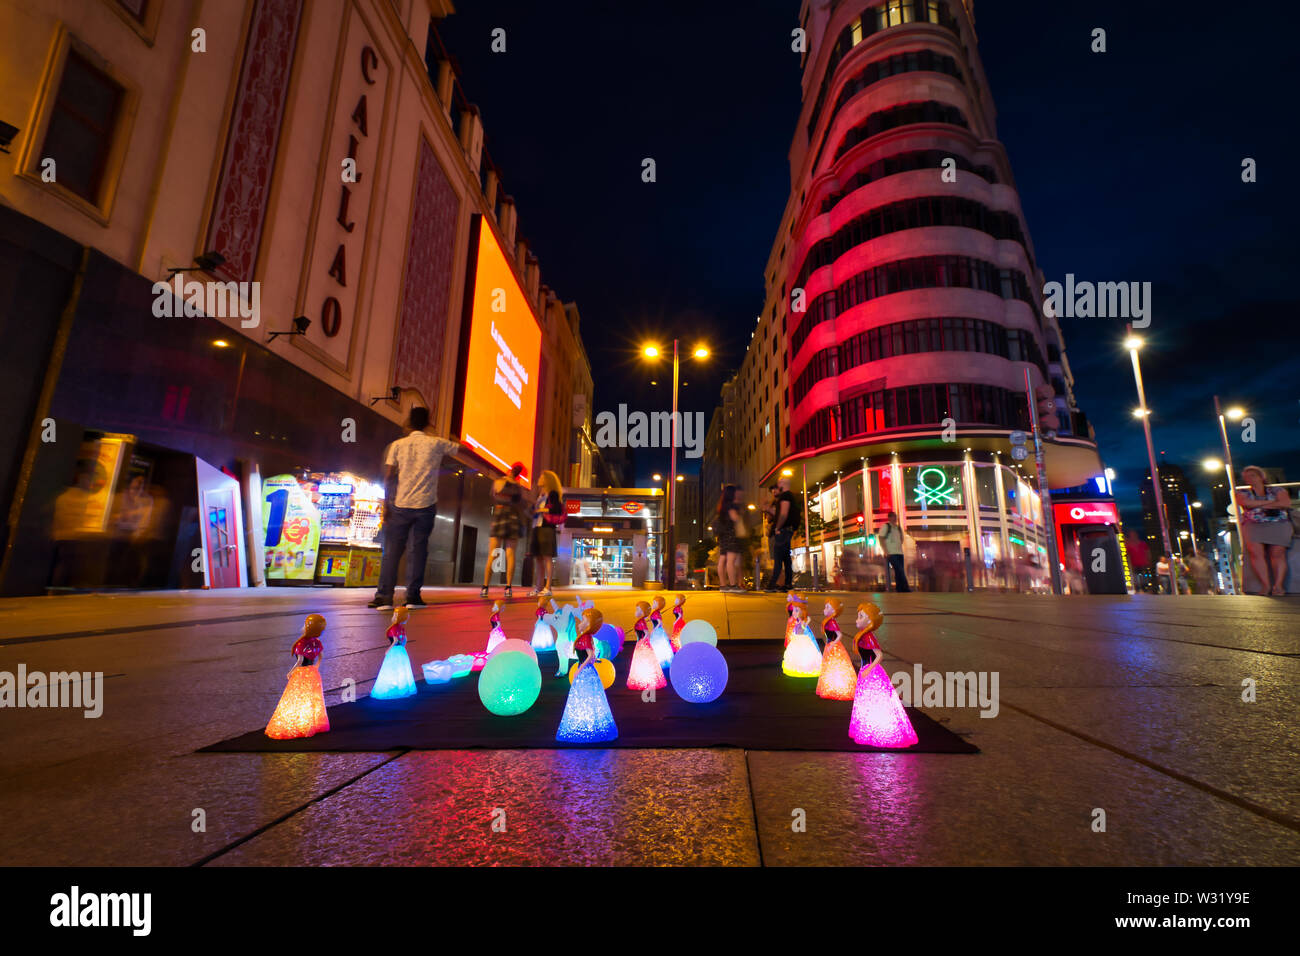 Madrid, Spain - June 20, 2019: Lamps lit in the shape of dolls and colored balls in the center of Madrid at night. Stock Photo